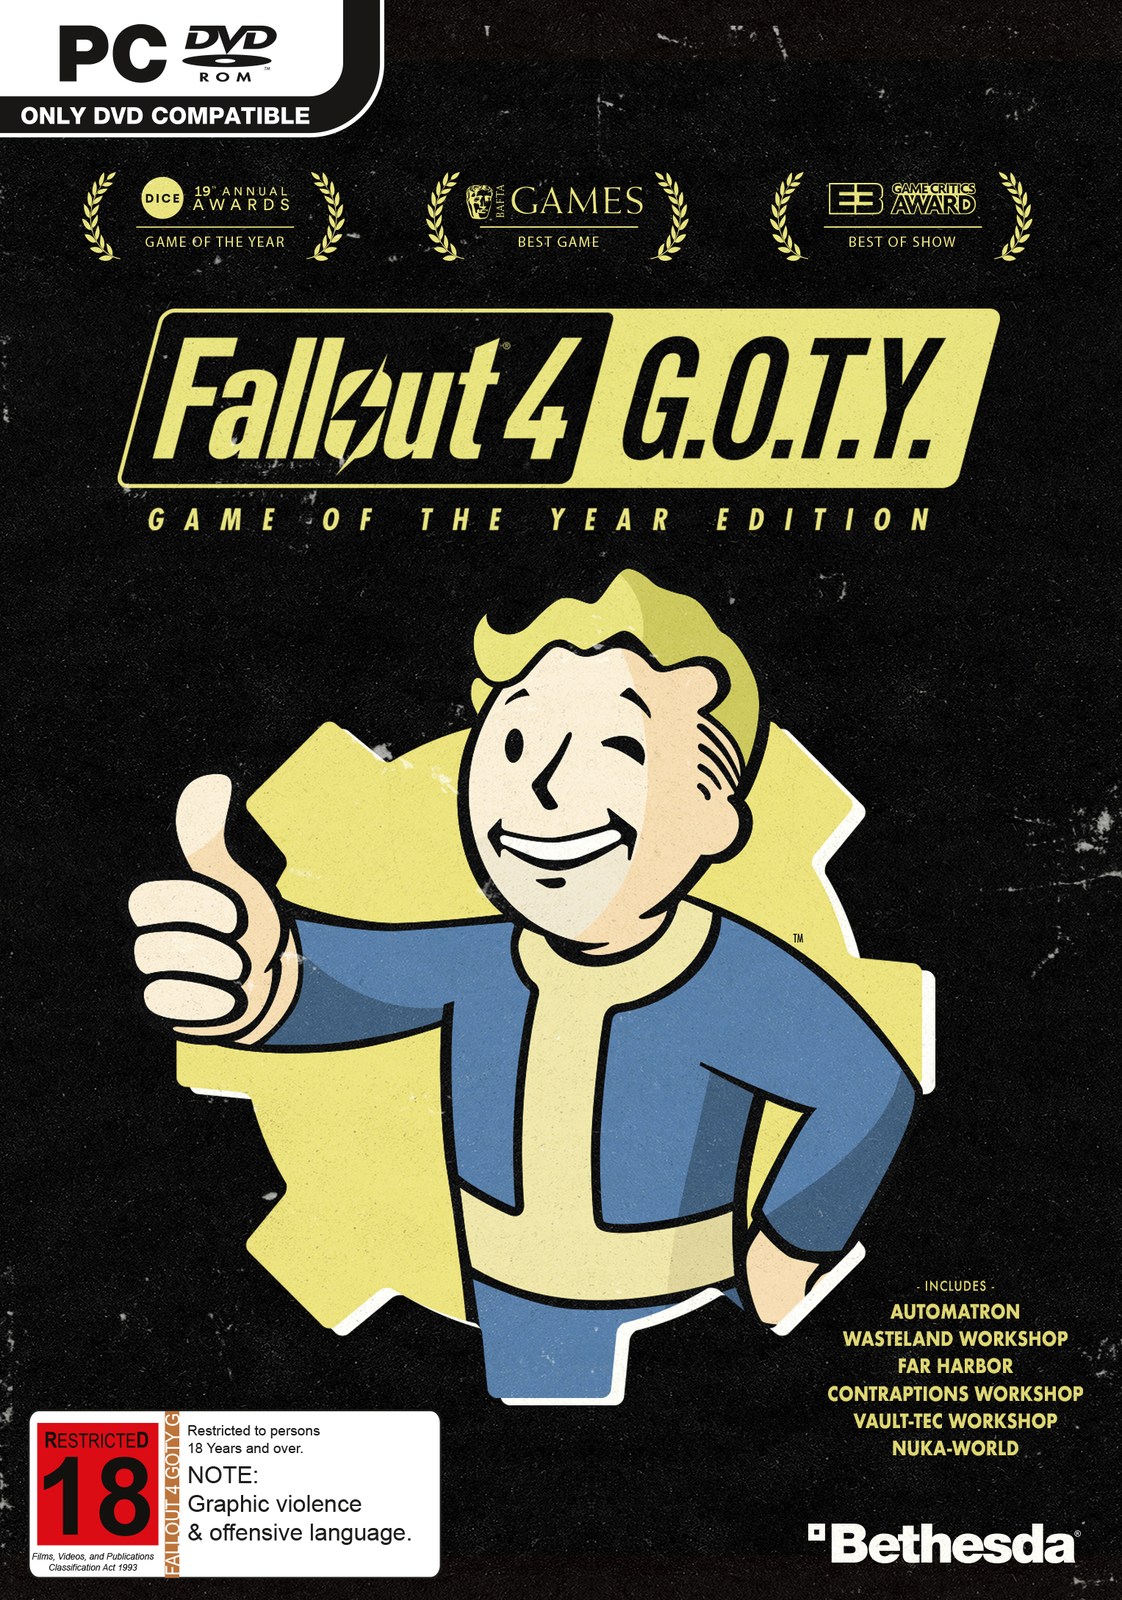 Fallout 4 Game of the Year Edition for PC Games image